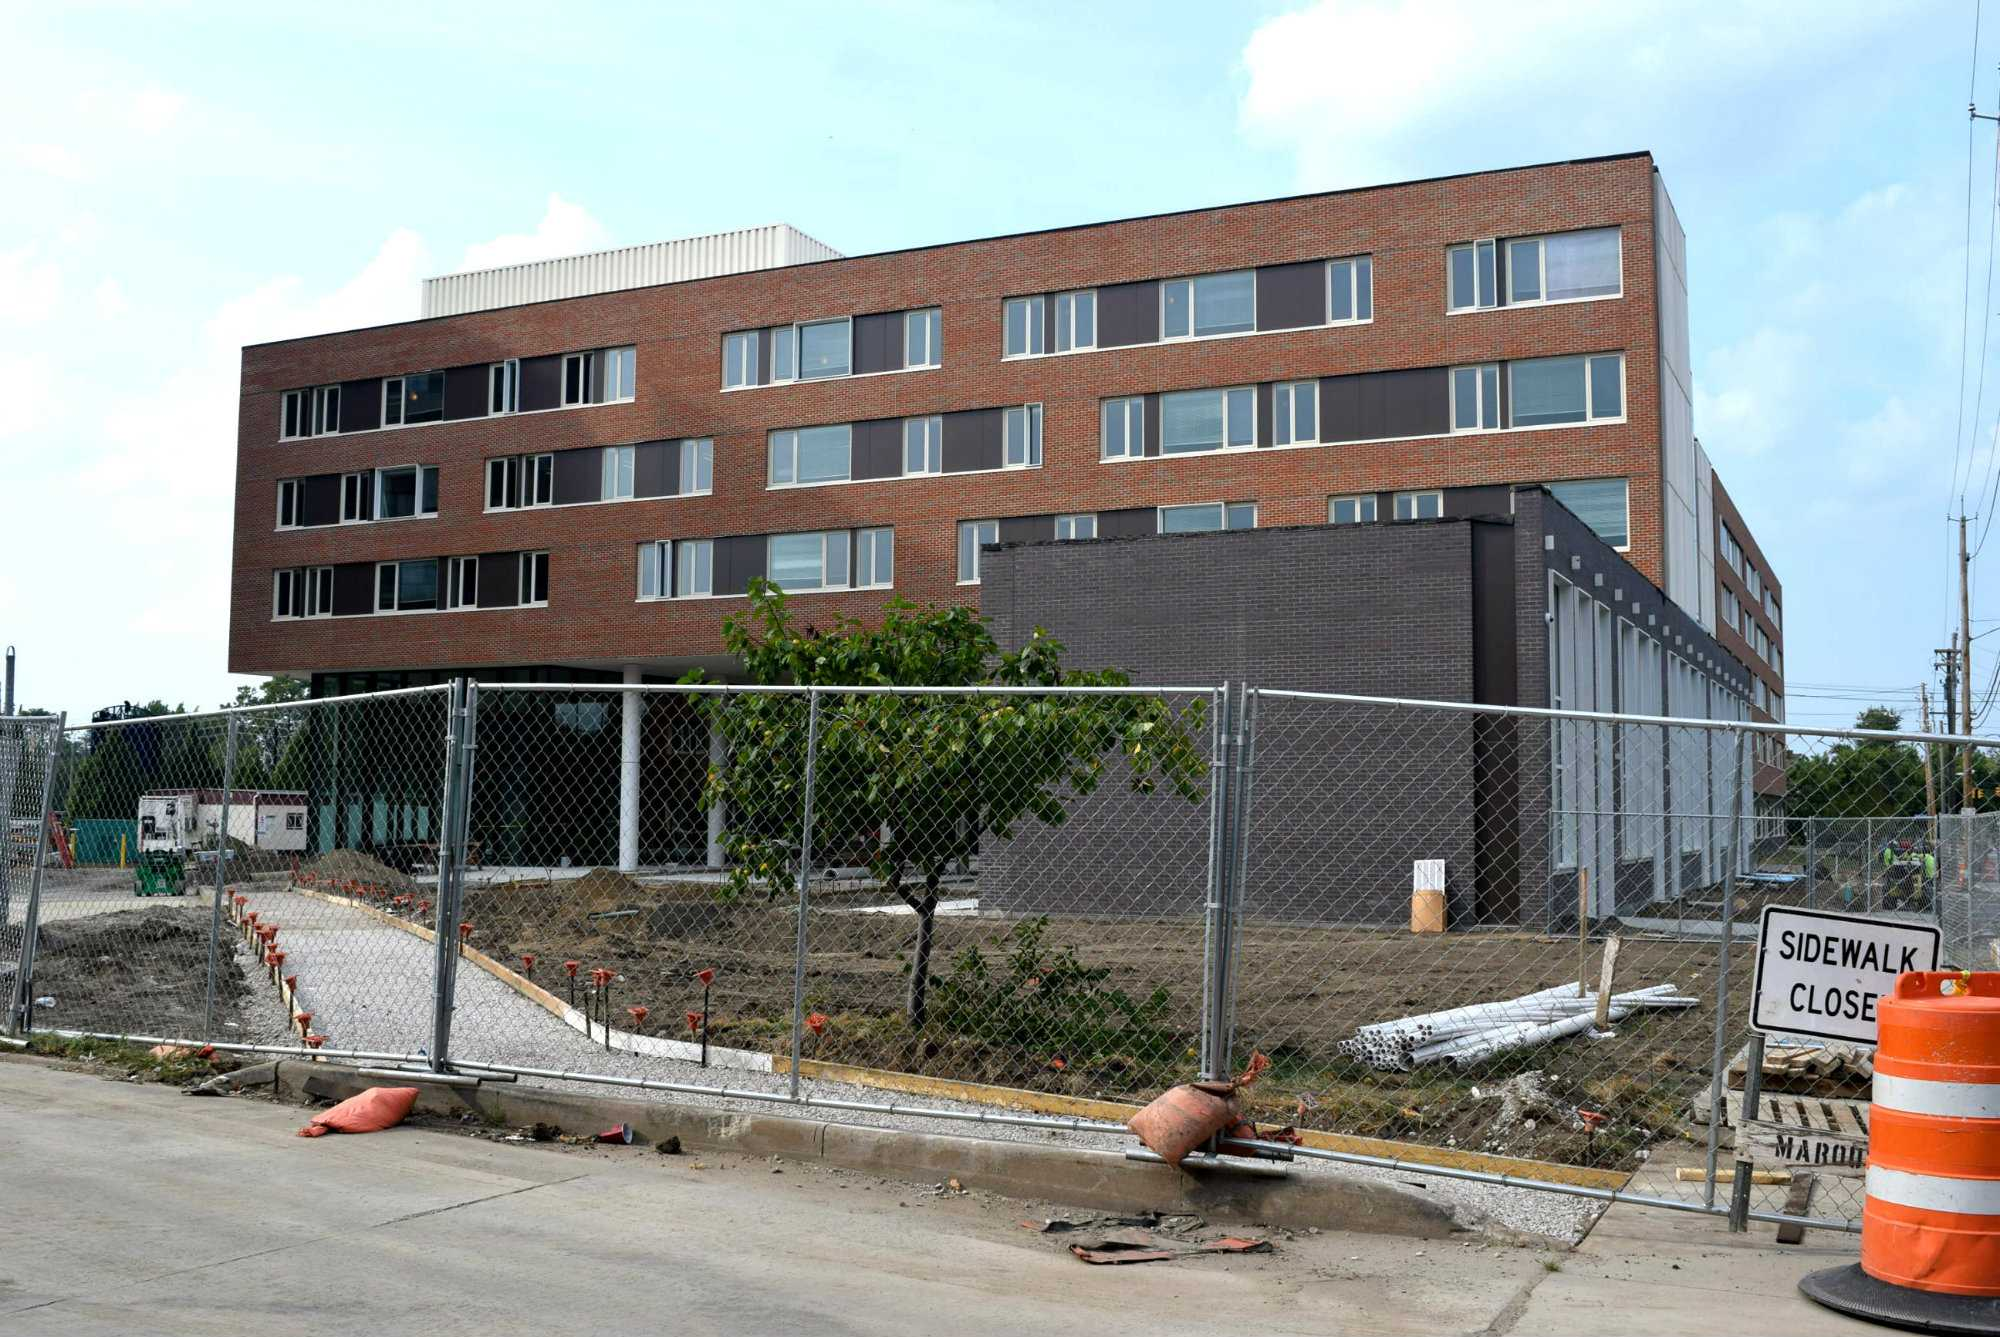 Students who have spent the beginning of the school year in hotels or other temporary accomodations will be able to move into their rooms in the new residence hall on September 12.